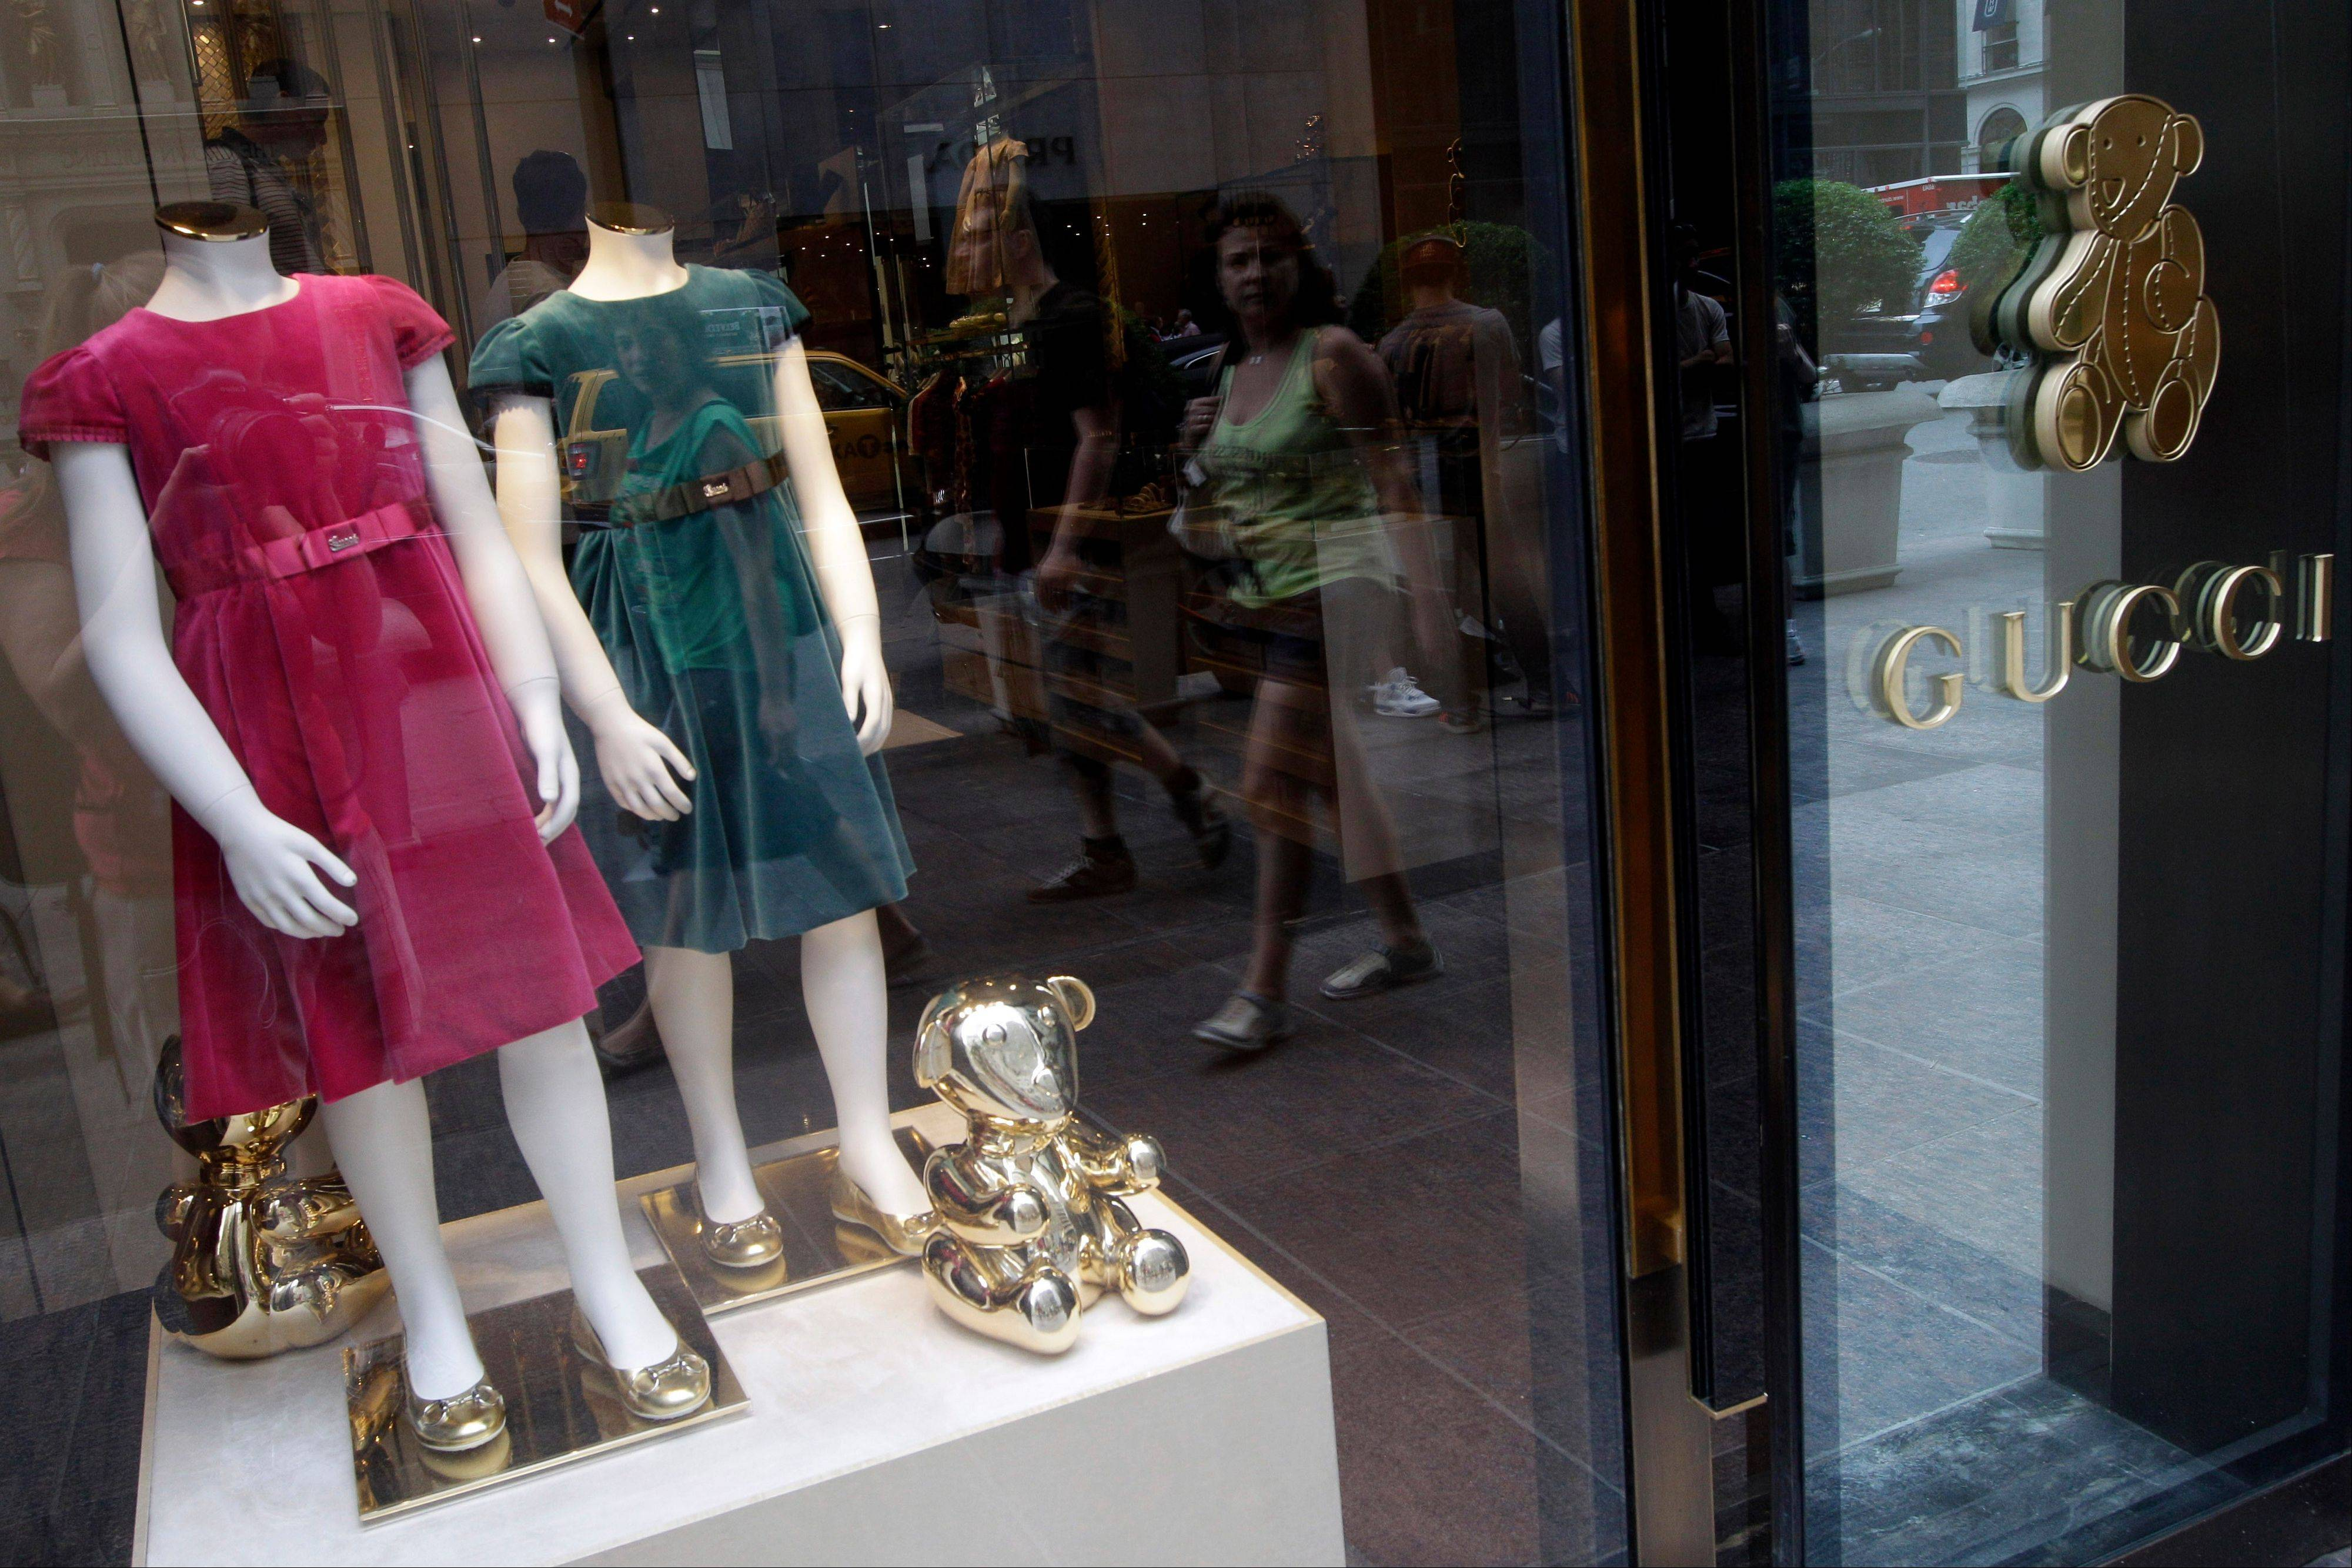 Girls dresses appear on display at the Gucci children's boutique on Fifth Avenue in New York. Gucci's two-level children's boutique, next door to its adult flagship, may have brass teddy bears on the walls and plush child-sized furniture, but the prices for the miniature looks are hardly child's play.